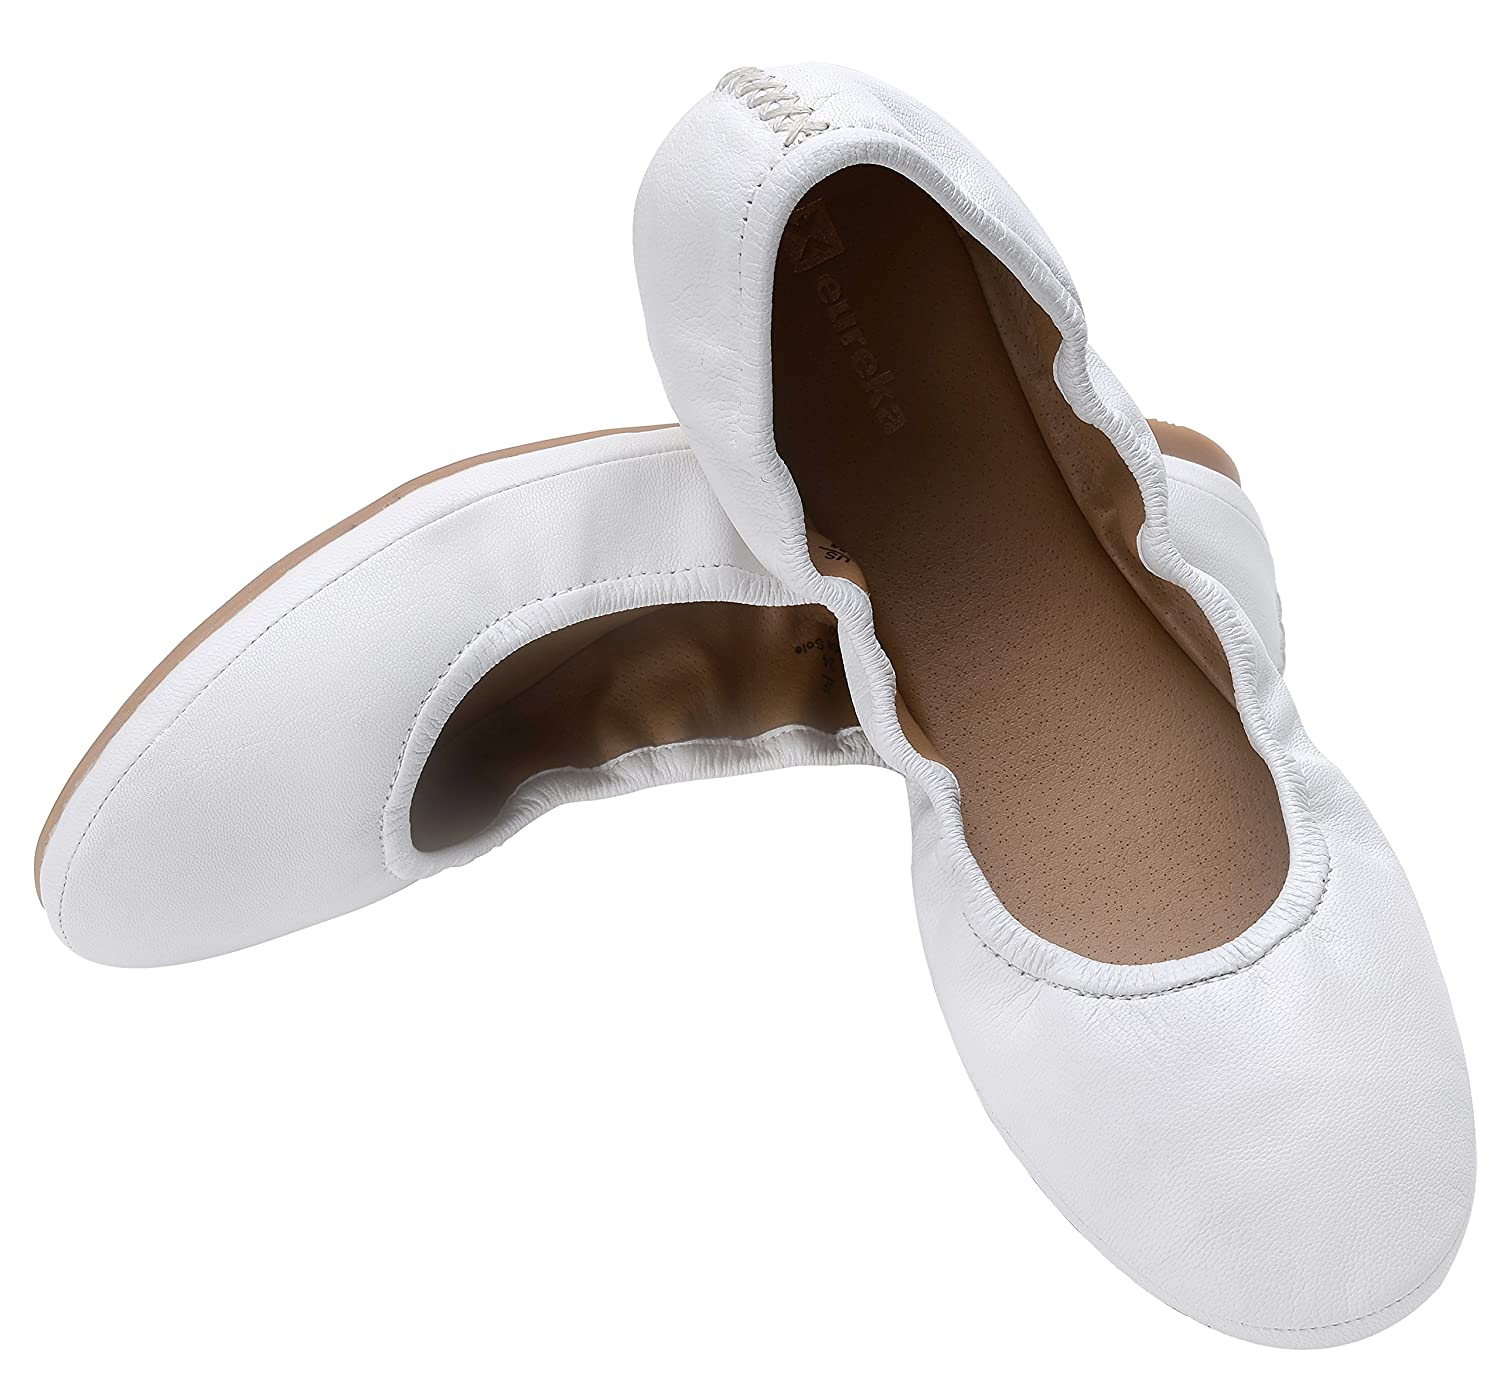 Eureka USA B(M) Women's Audrey Leather Ballet Flat B07BZY4RHT 10 B(M) USA US|202 Cream White e02253